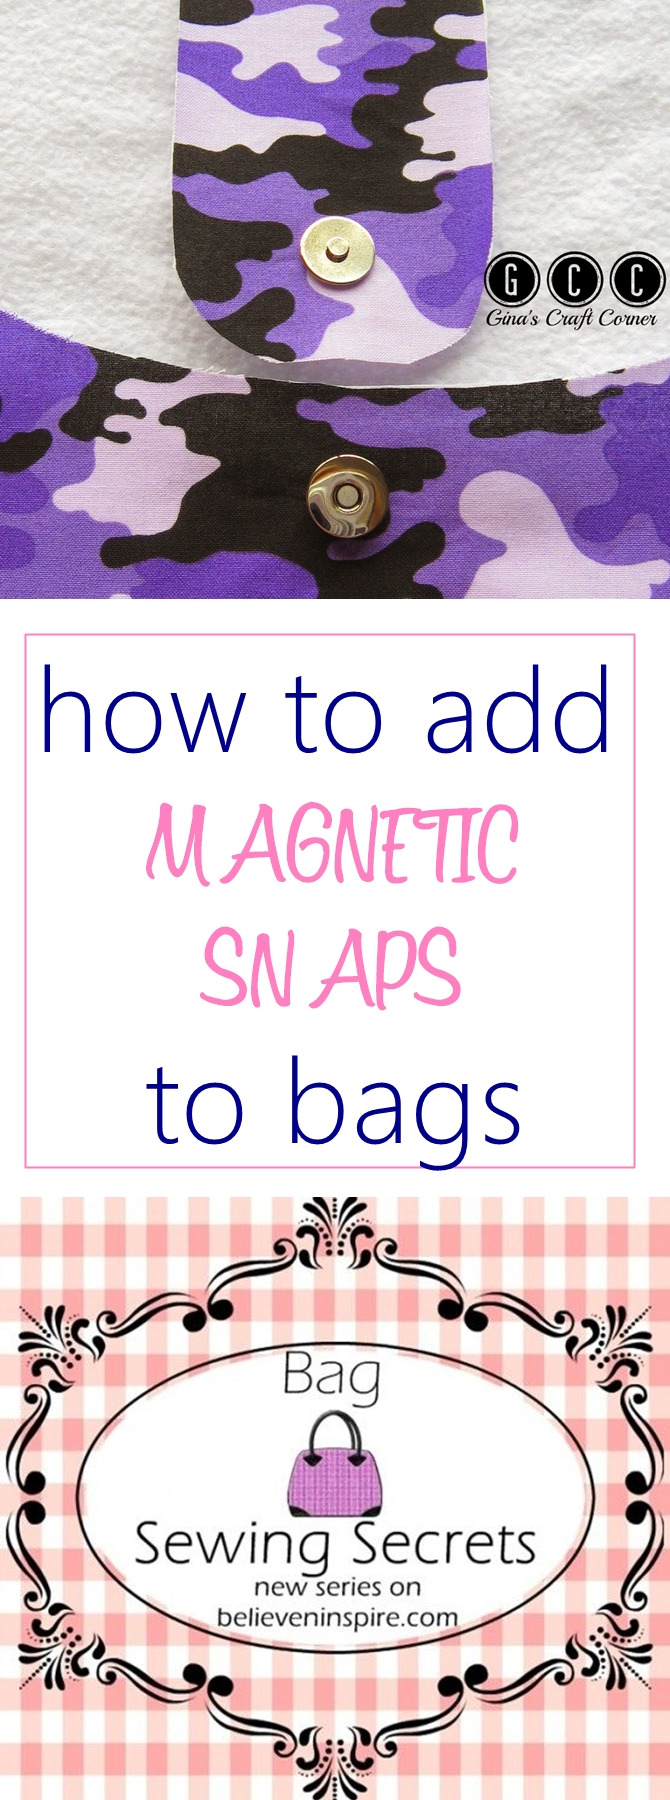 How to add magnetic snaps to bags BAG SEWING SECRETS on sewsomestuff.com. Are you new to sewing bags and are looking for a DETAILED step-by-step tutorial on how to add magnetic snaps to bags? Check out this post full of detailed colorful pictures to guide you on how to magnetic snaps to bags, plus links to several other bag making techniques. Check it out NOW!